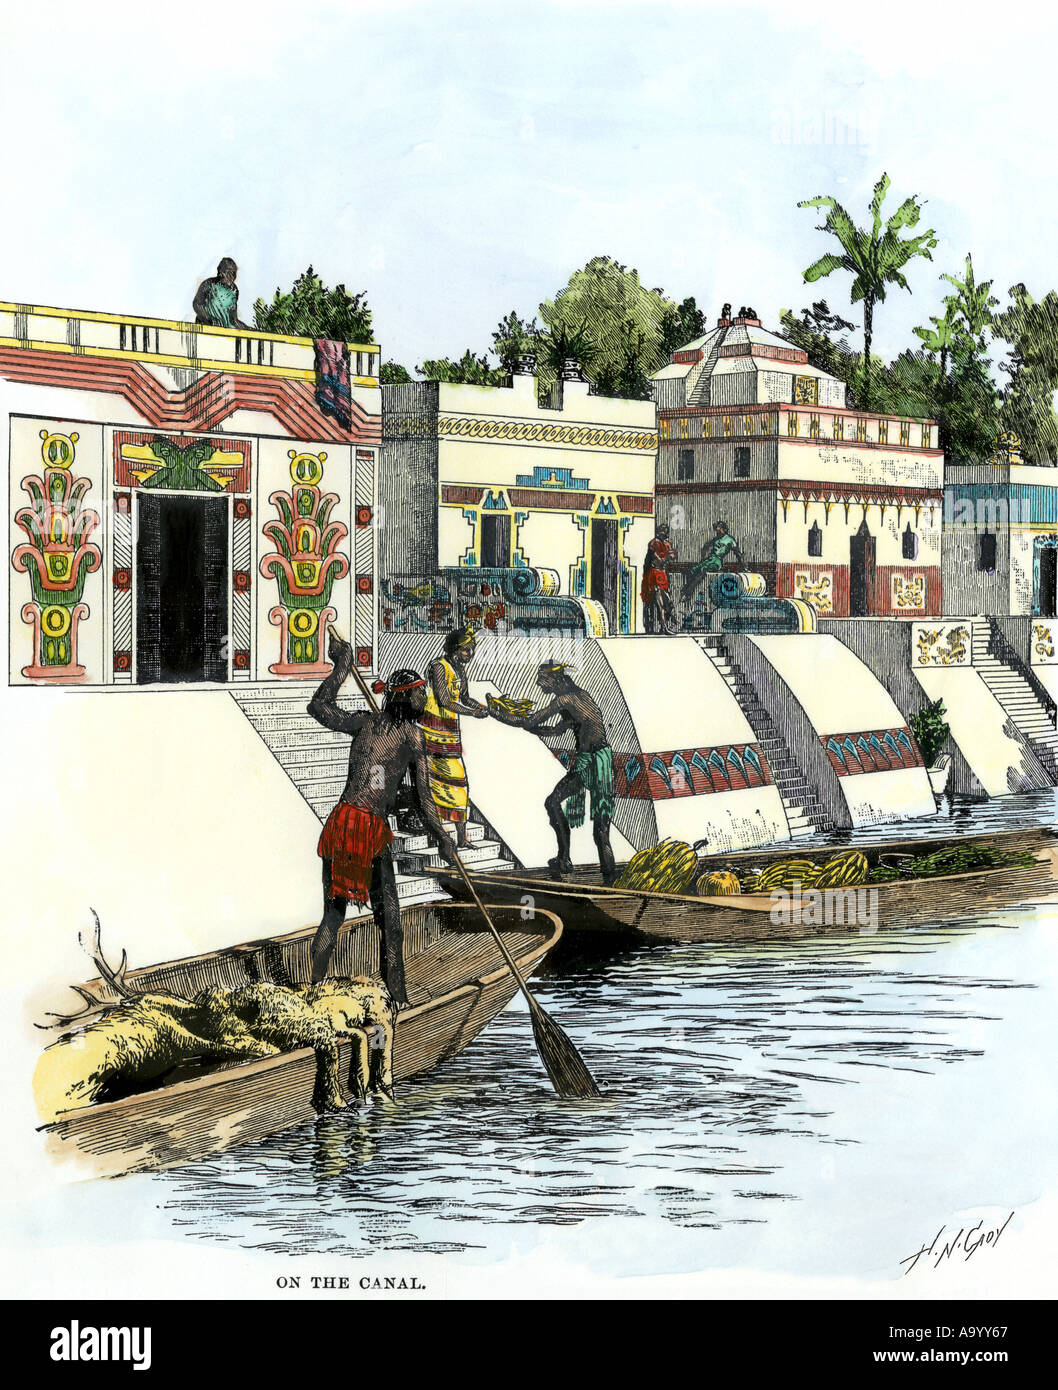 aztec merchants on the canal in tenochtitlan before the spanish